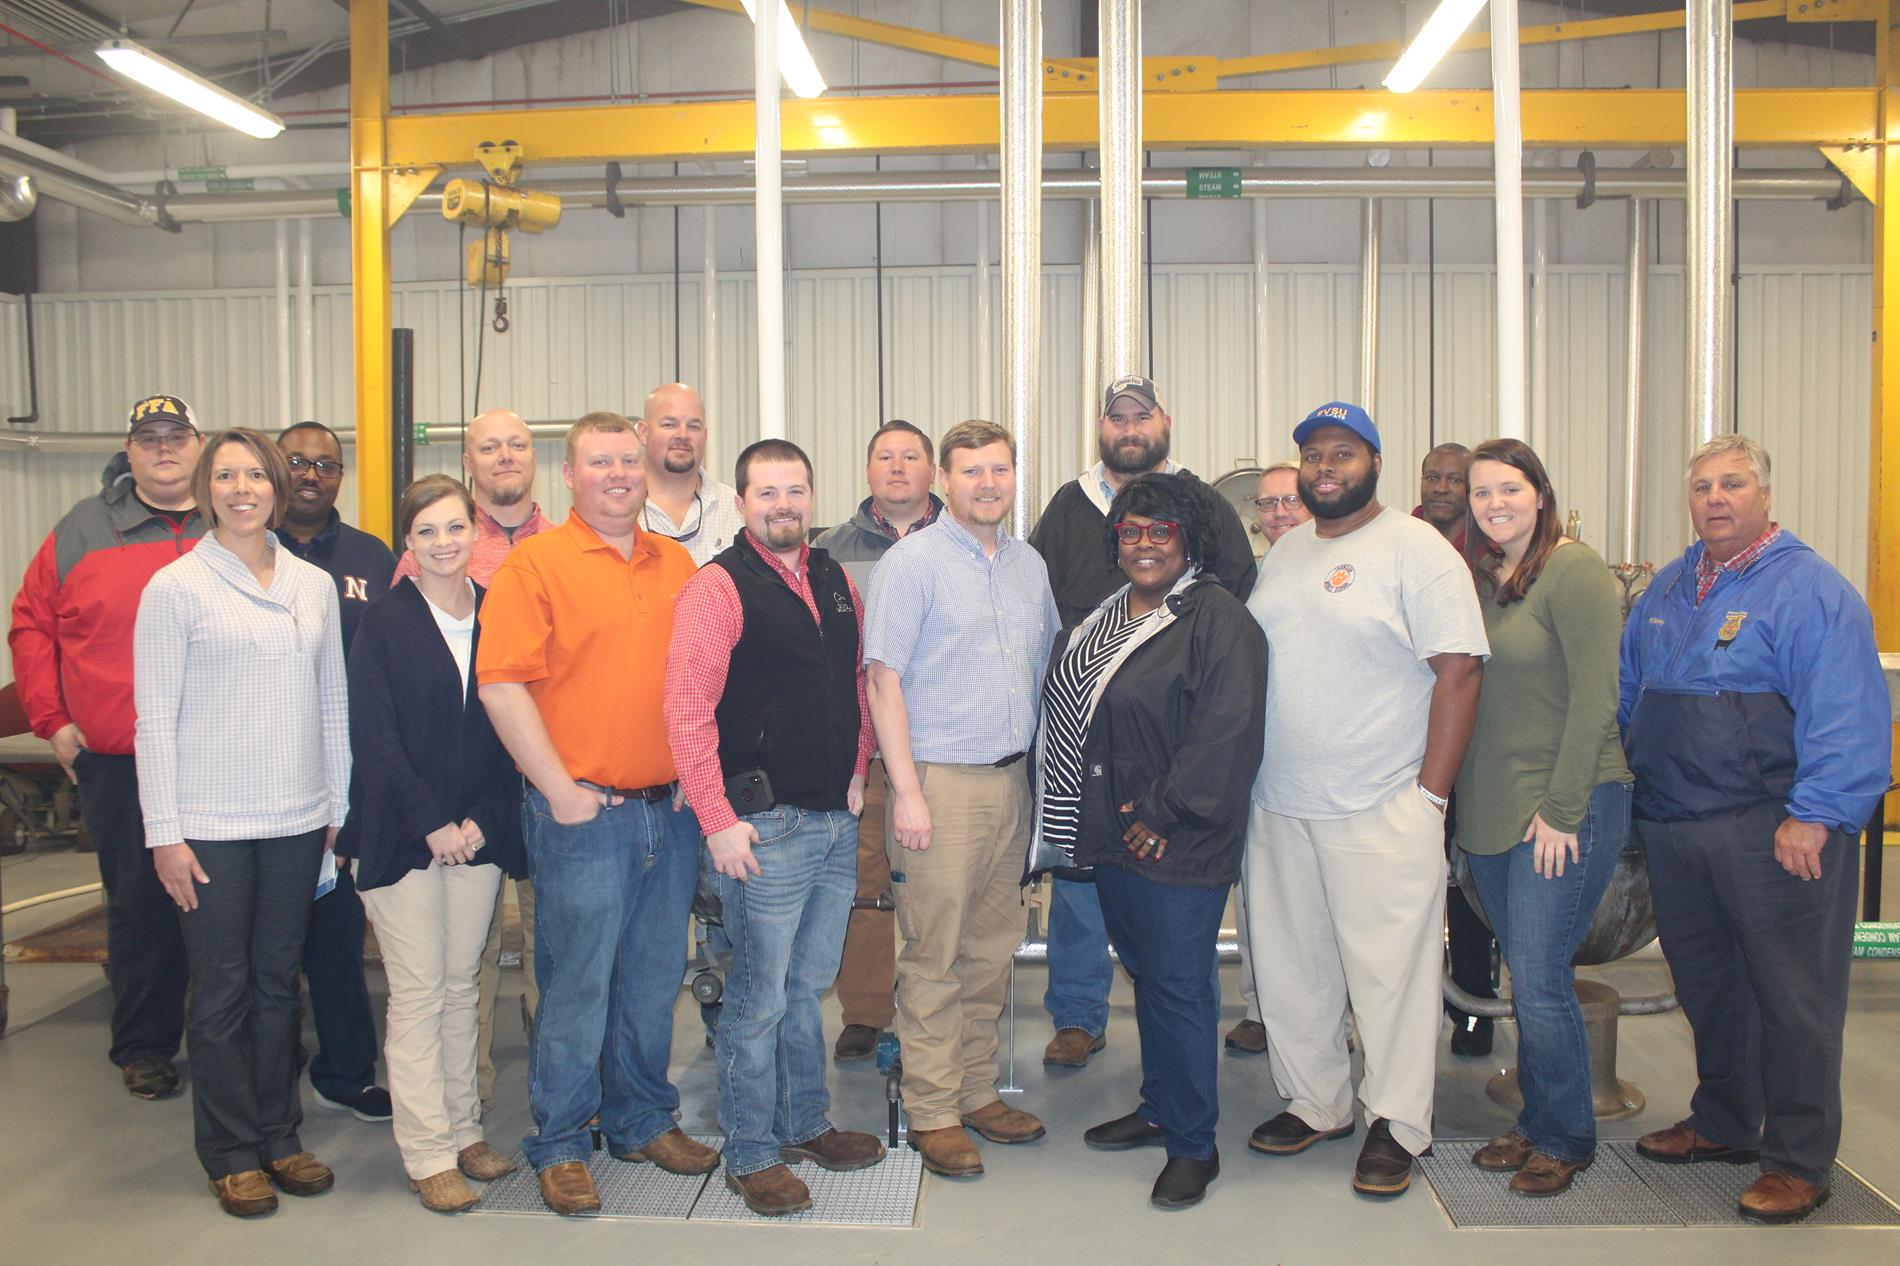 Agriculture Teachers at Argene Claxton Canning Plant